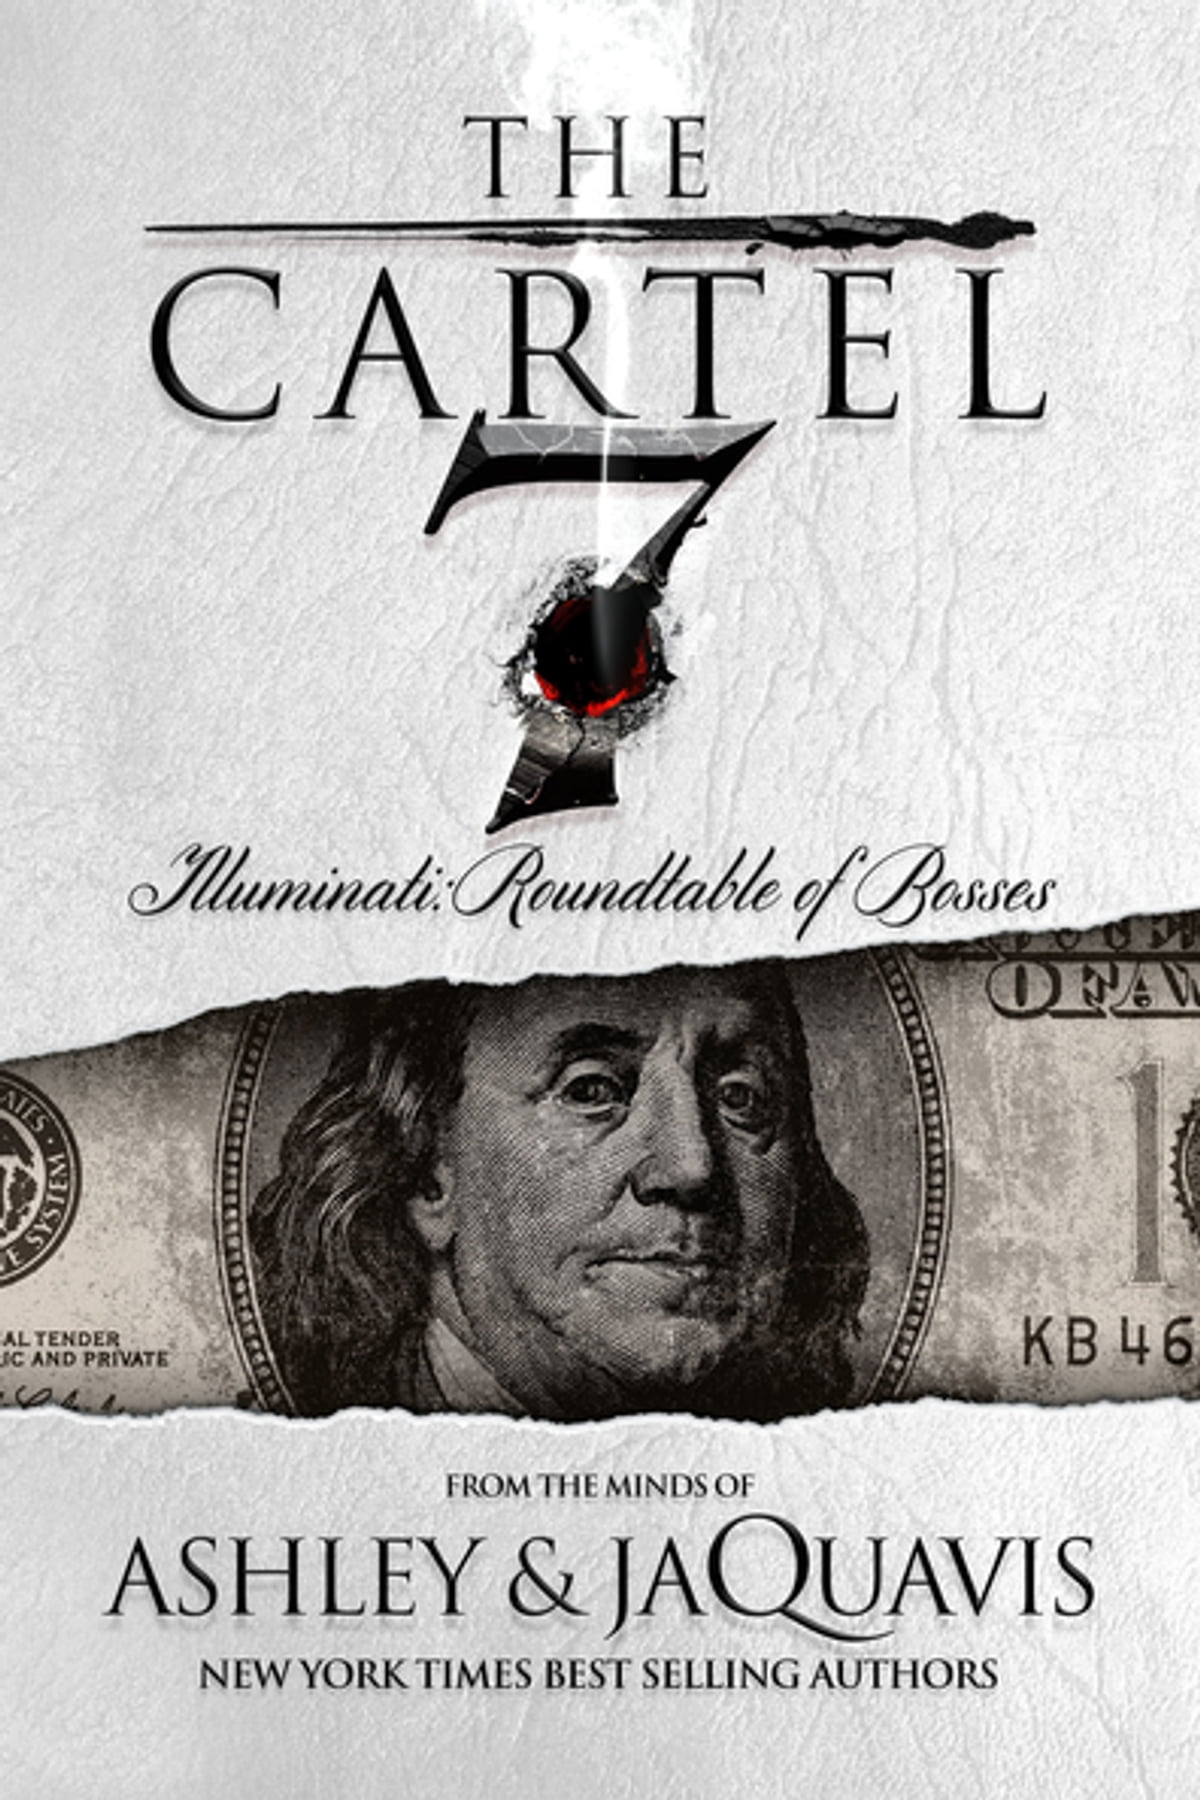 A moment of silence ebook by sister souljah 9781476766003 the cartel 7 illuminati roundtable of bosses ebook by ashley jaquavis jaquavis fandeluxe Gallery